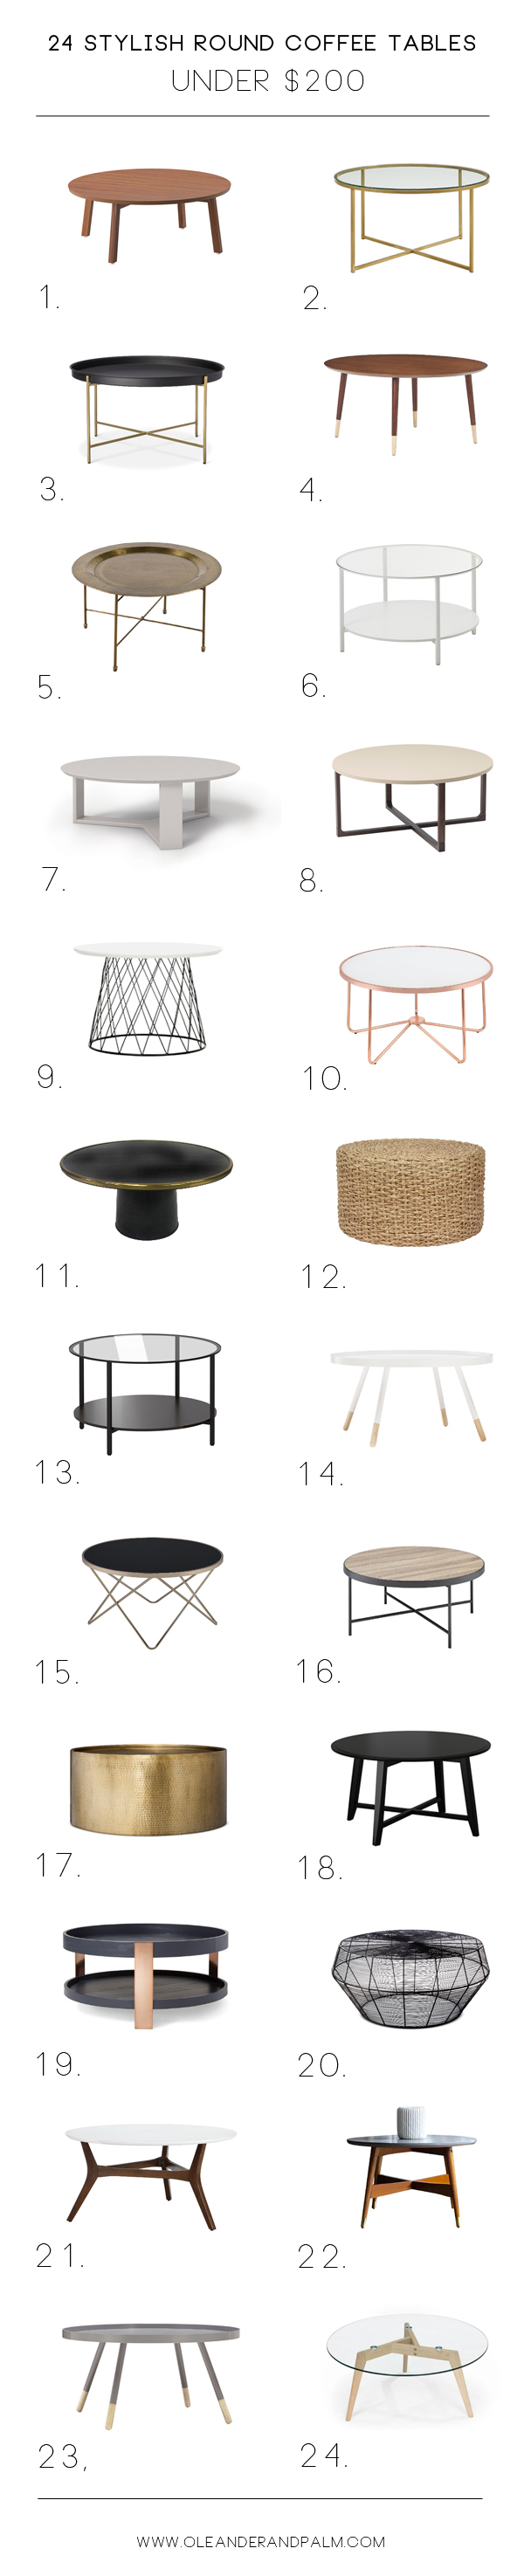 24 Stylish Coffee Tables Under 200 Oleander Palm